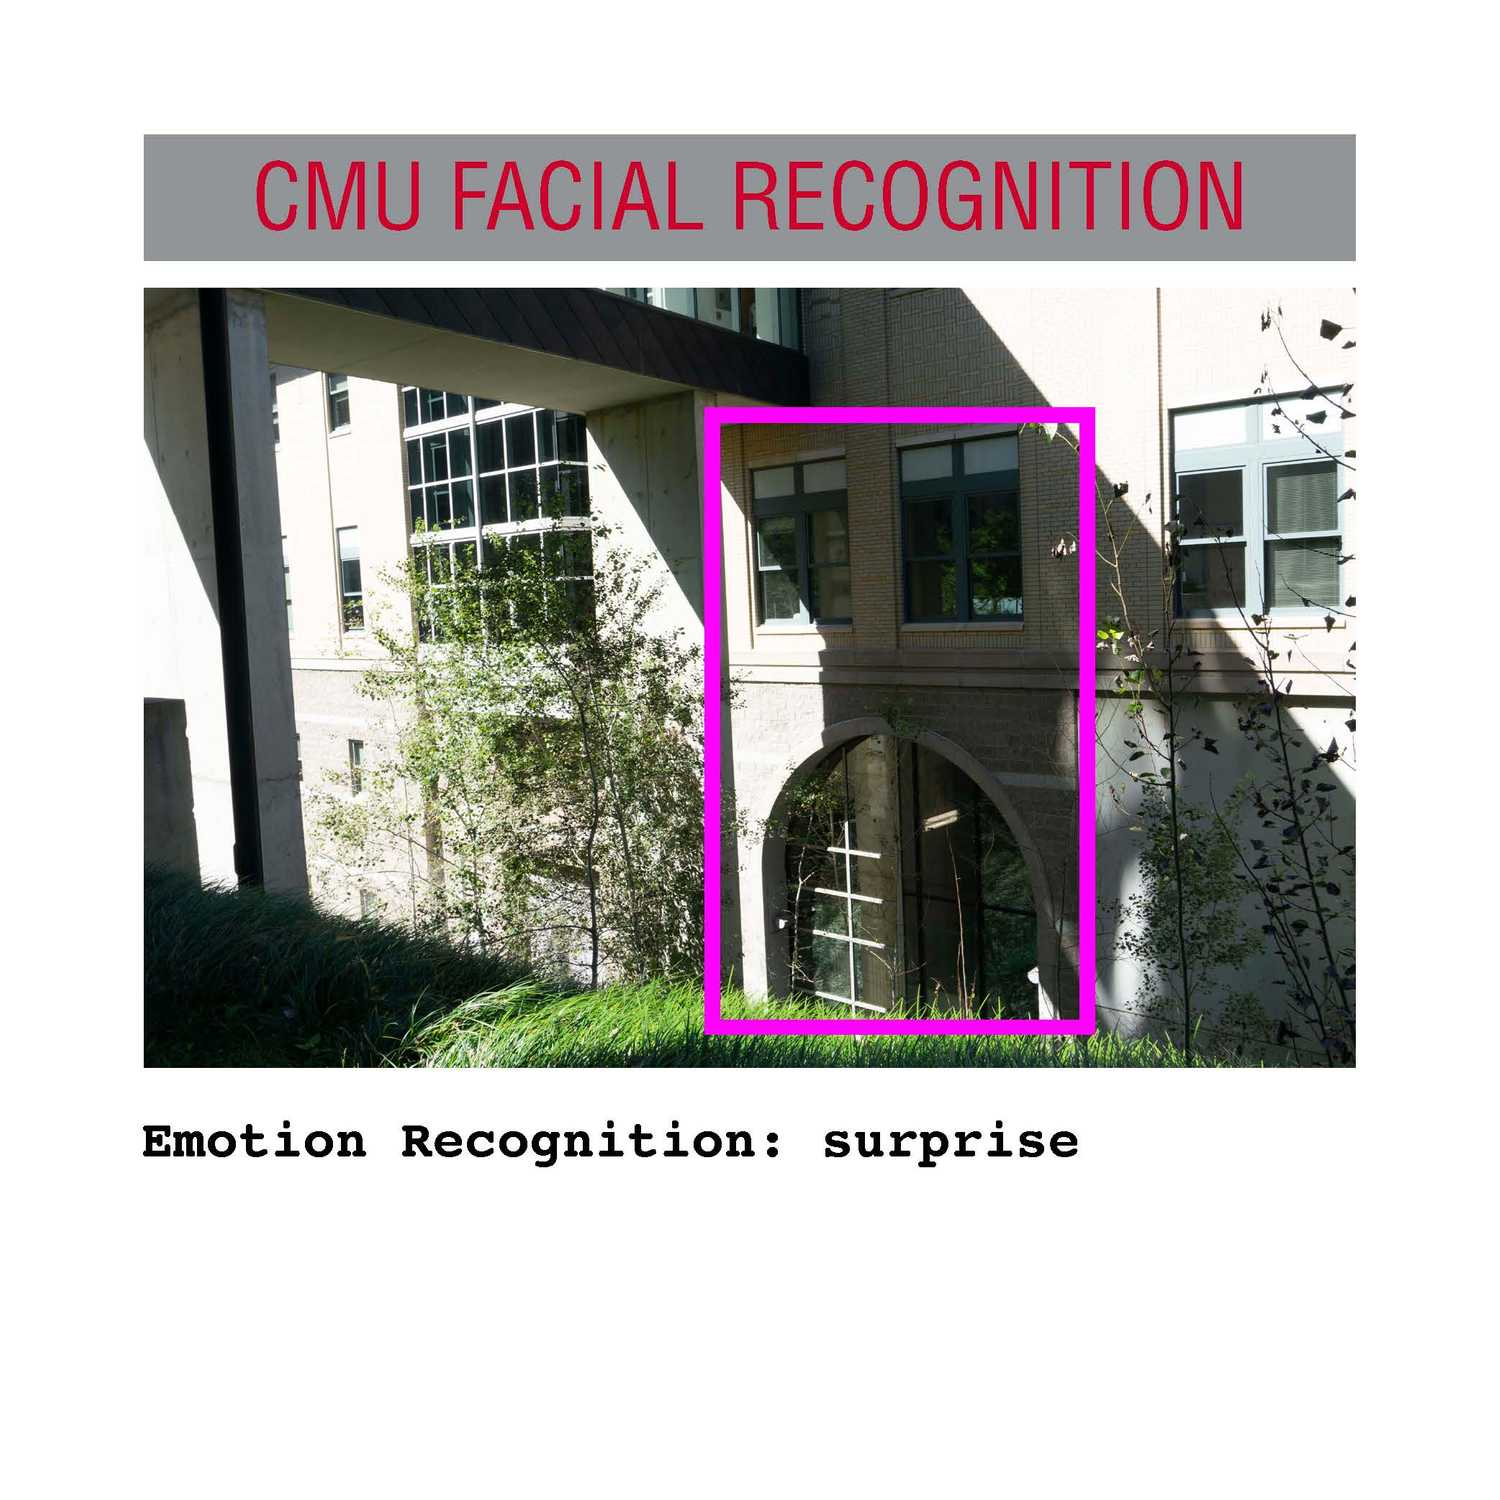 facial recognition Page 03